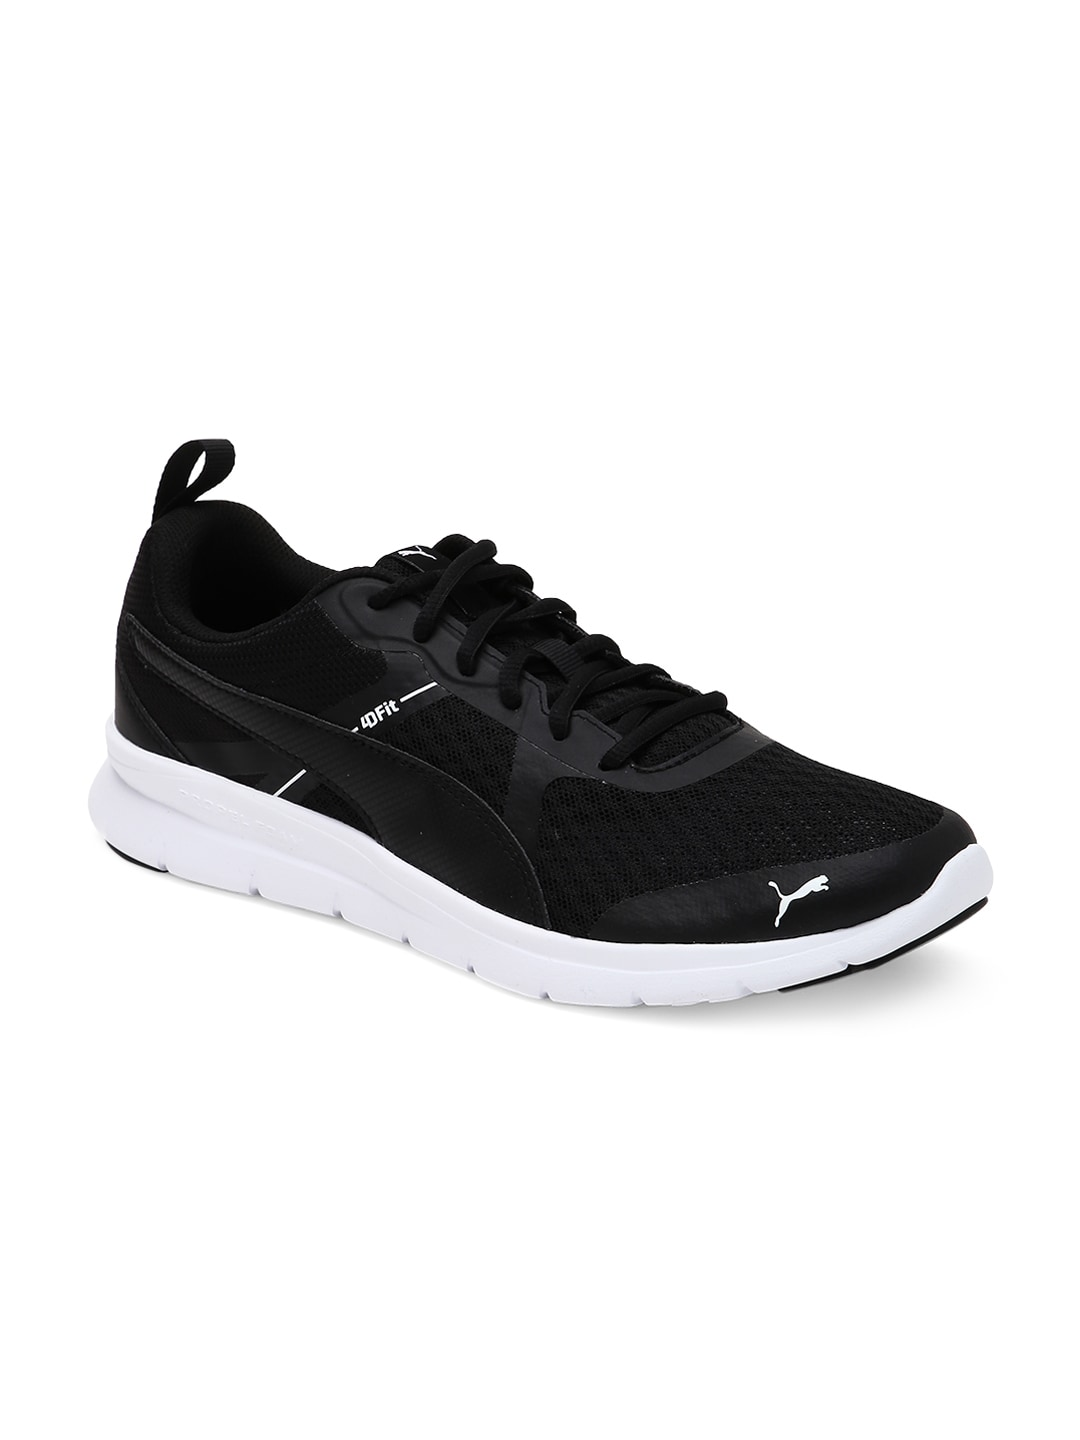 India in Puma for Menamp; Shoes Women Puma Buy Shoes Online hrQCtsdxB